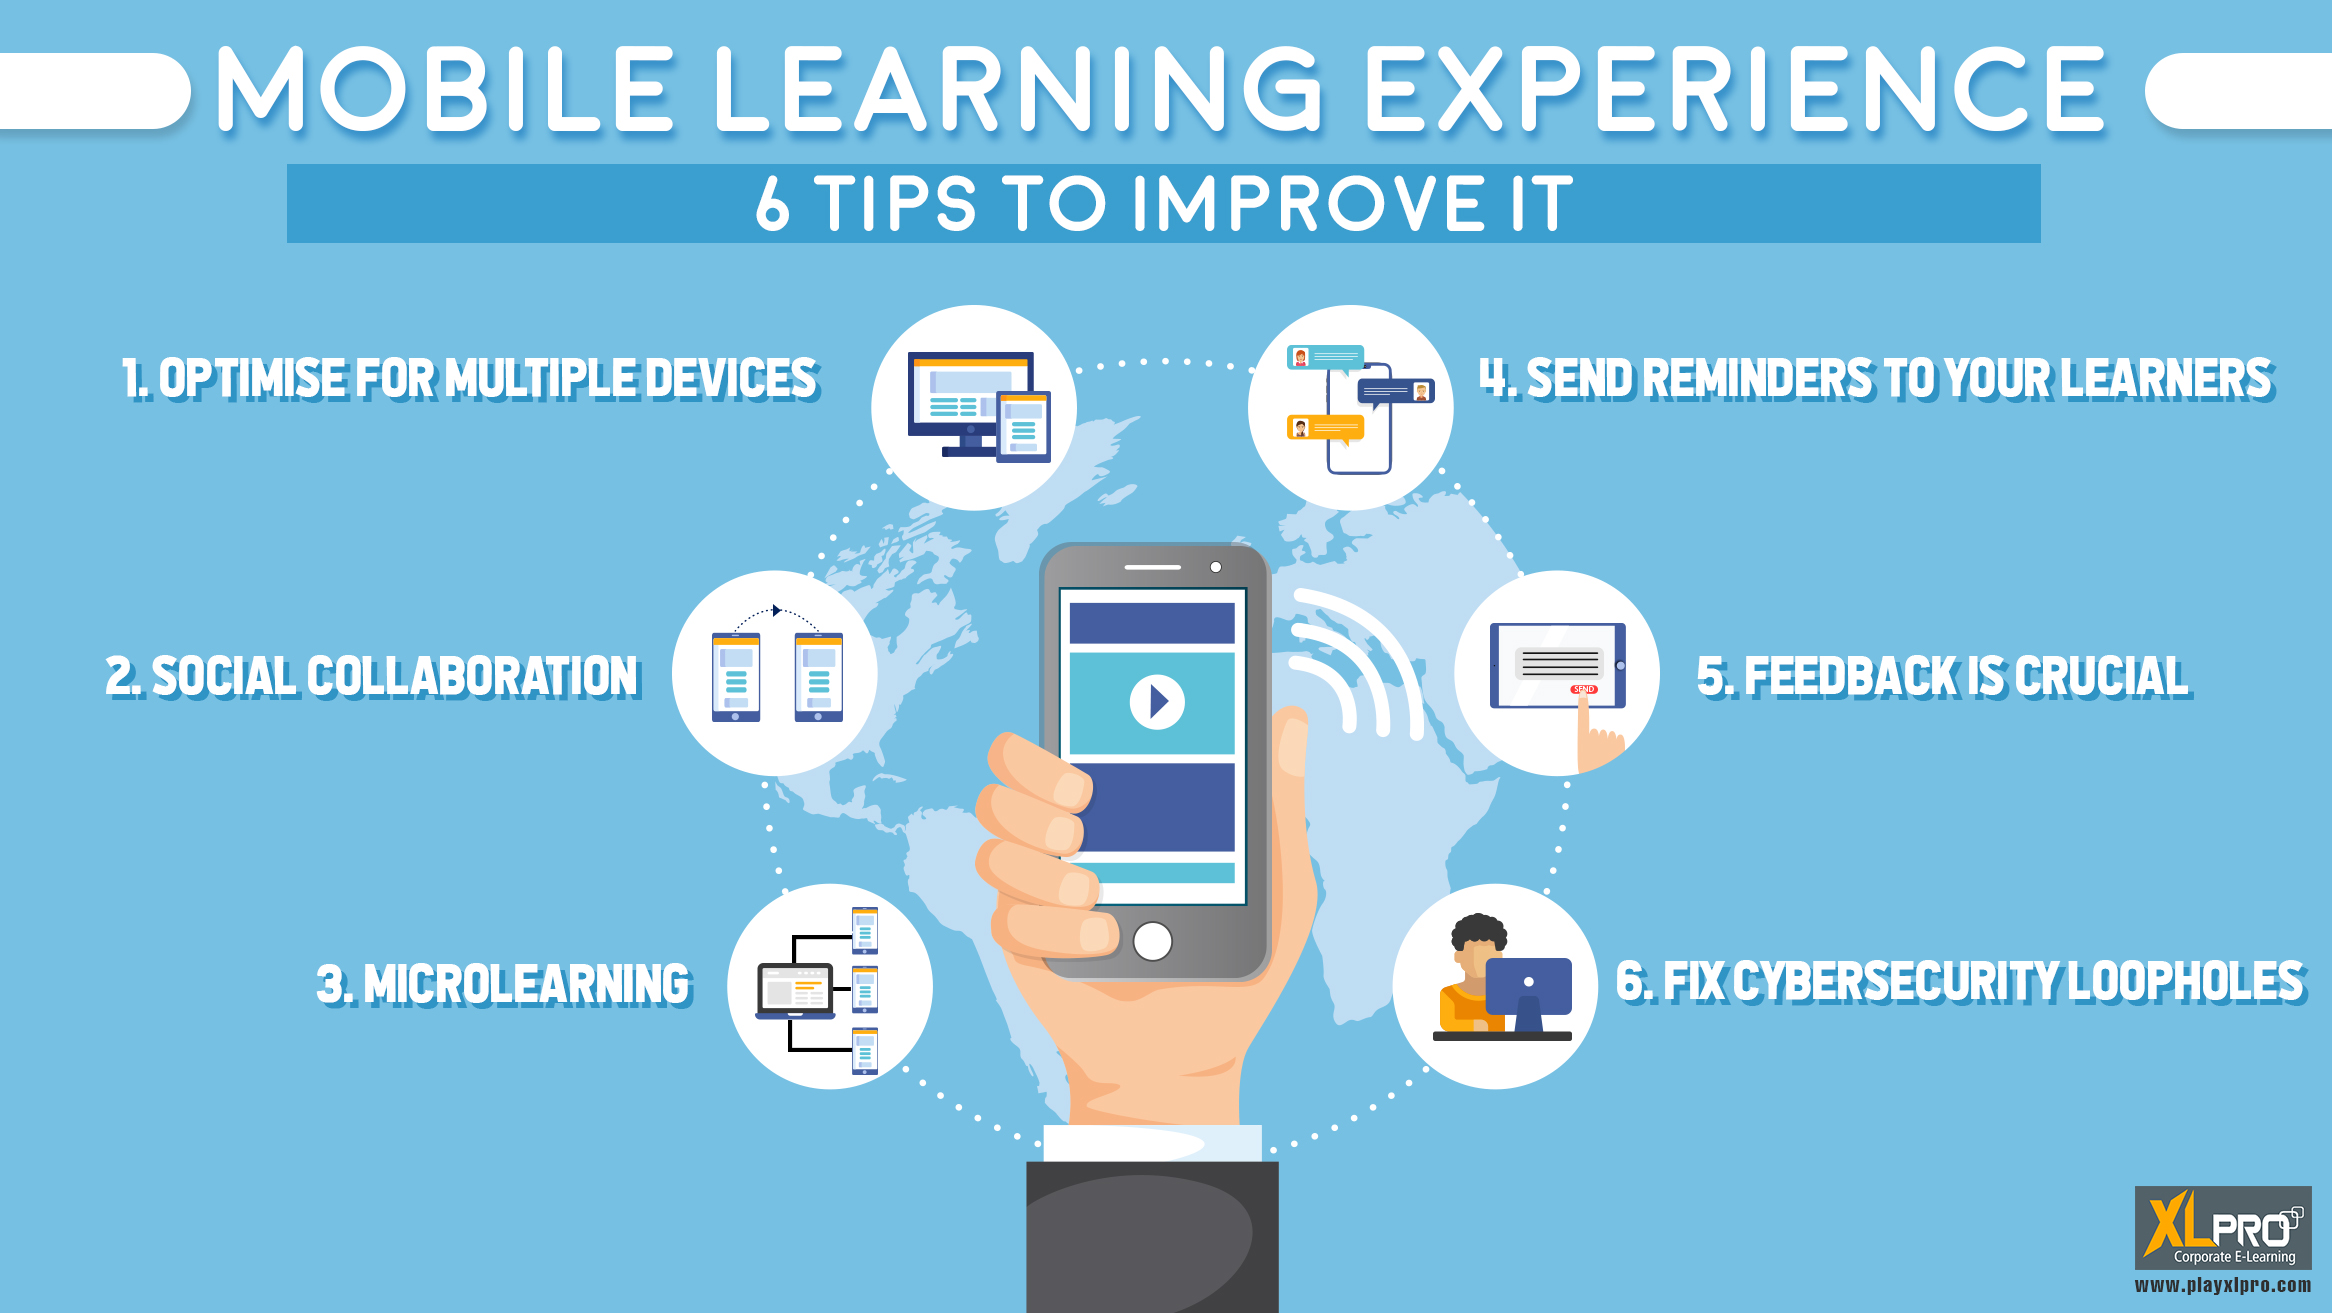 Mobile-Learning-Experience-5-Tips-To-Improve-It-